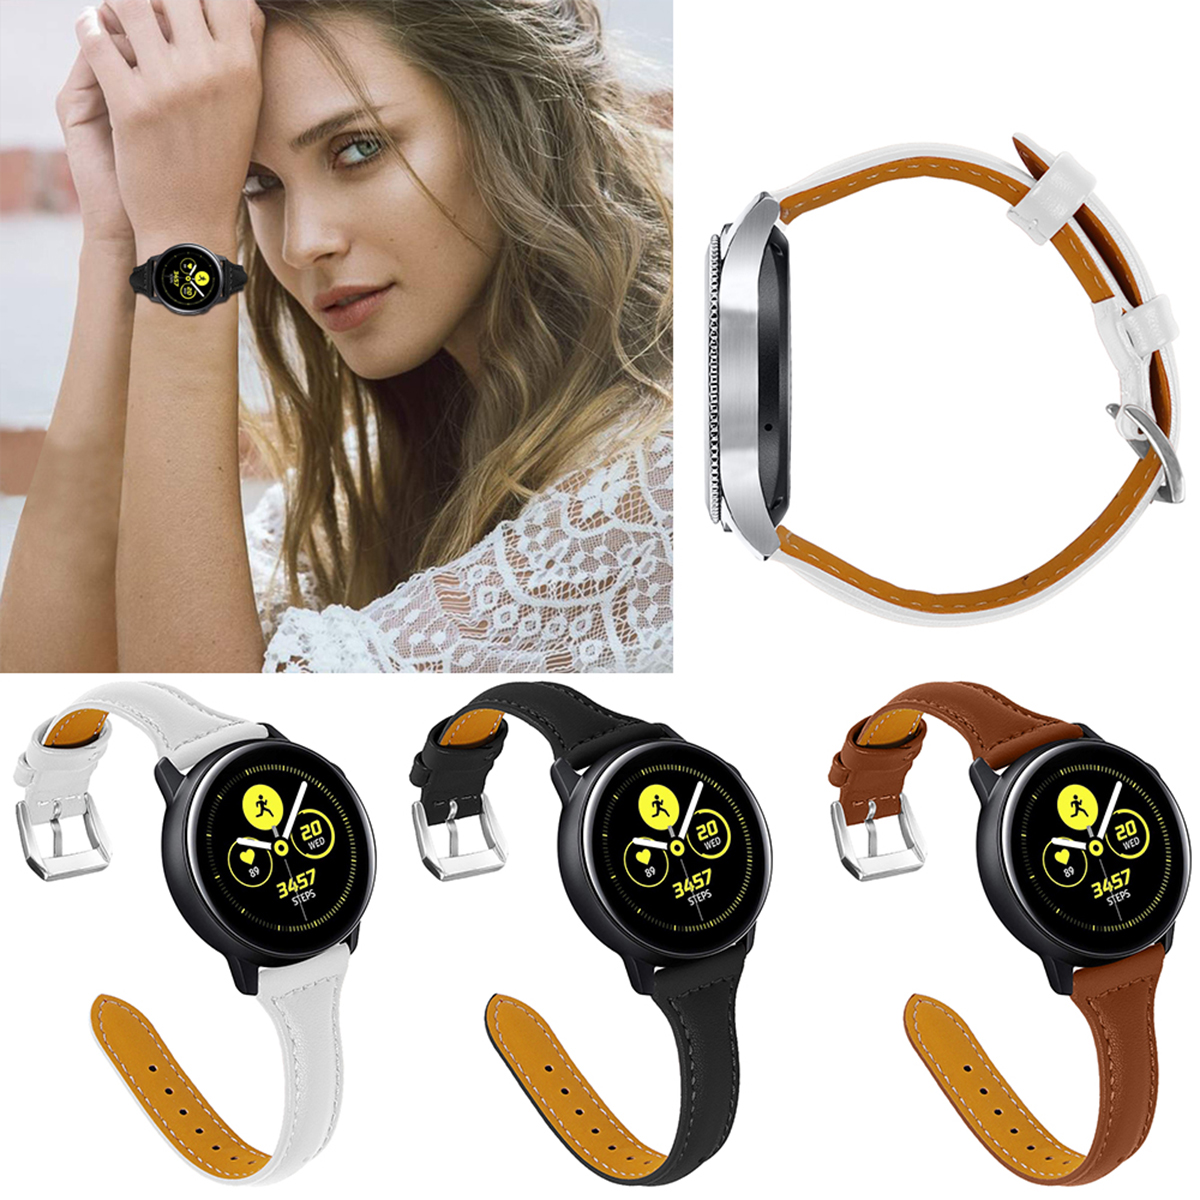 Adjustable Universal Cowhide Leather Watch Band Replacement Strap White/20mm Fits For 5.5